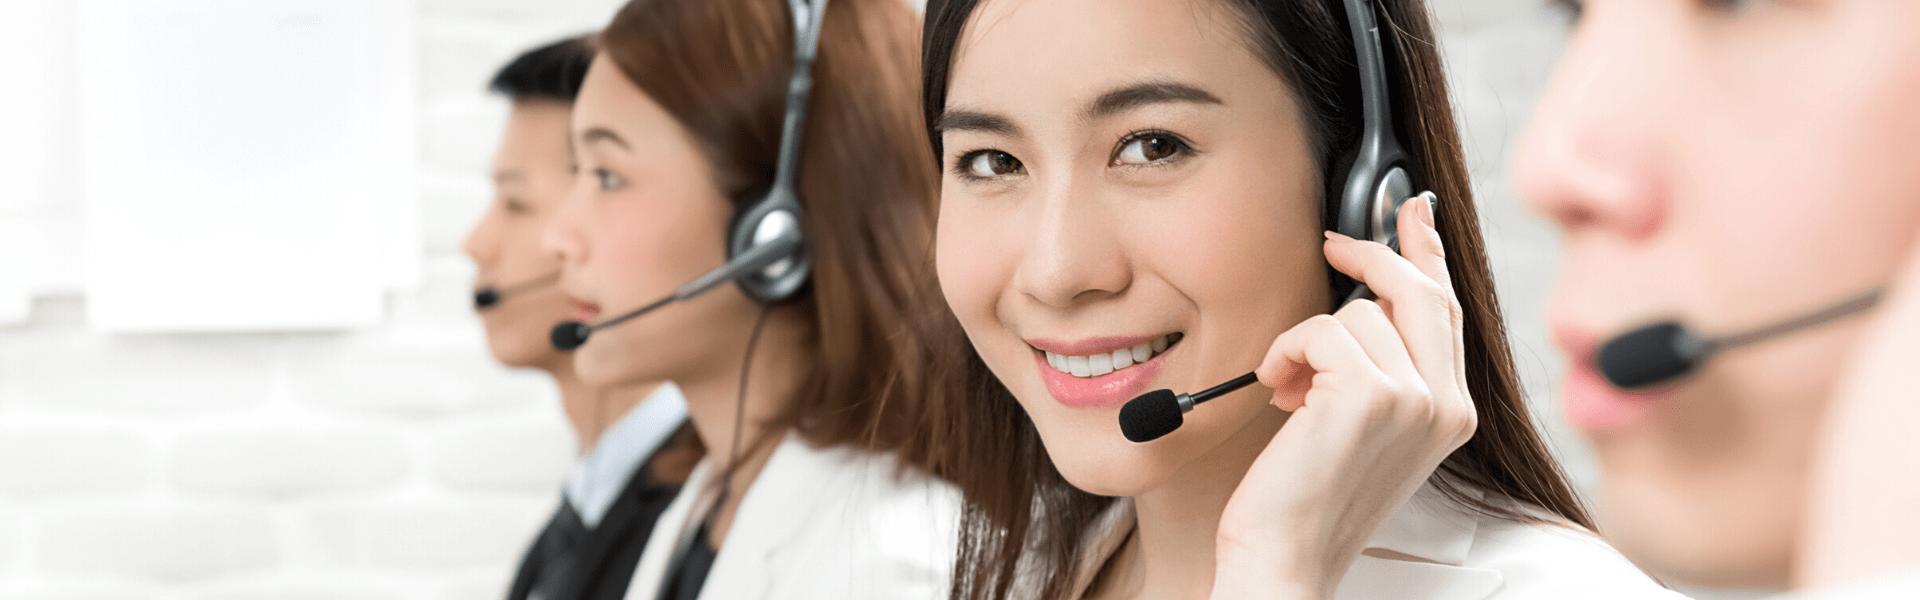 Singapore Best Telemarketing Companies